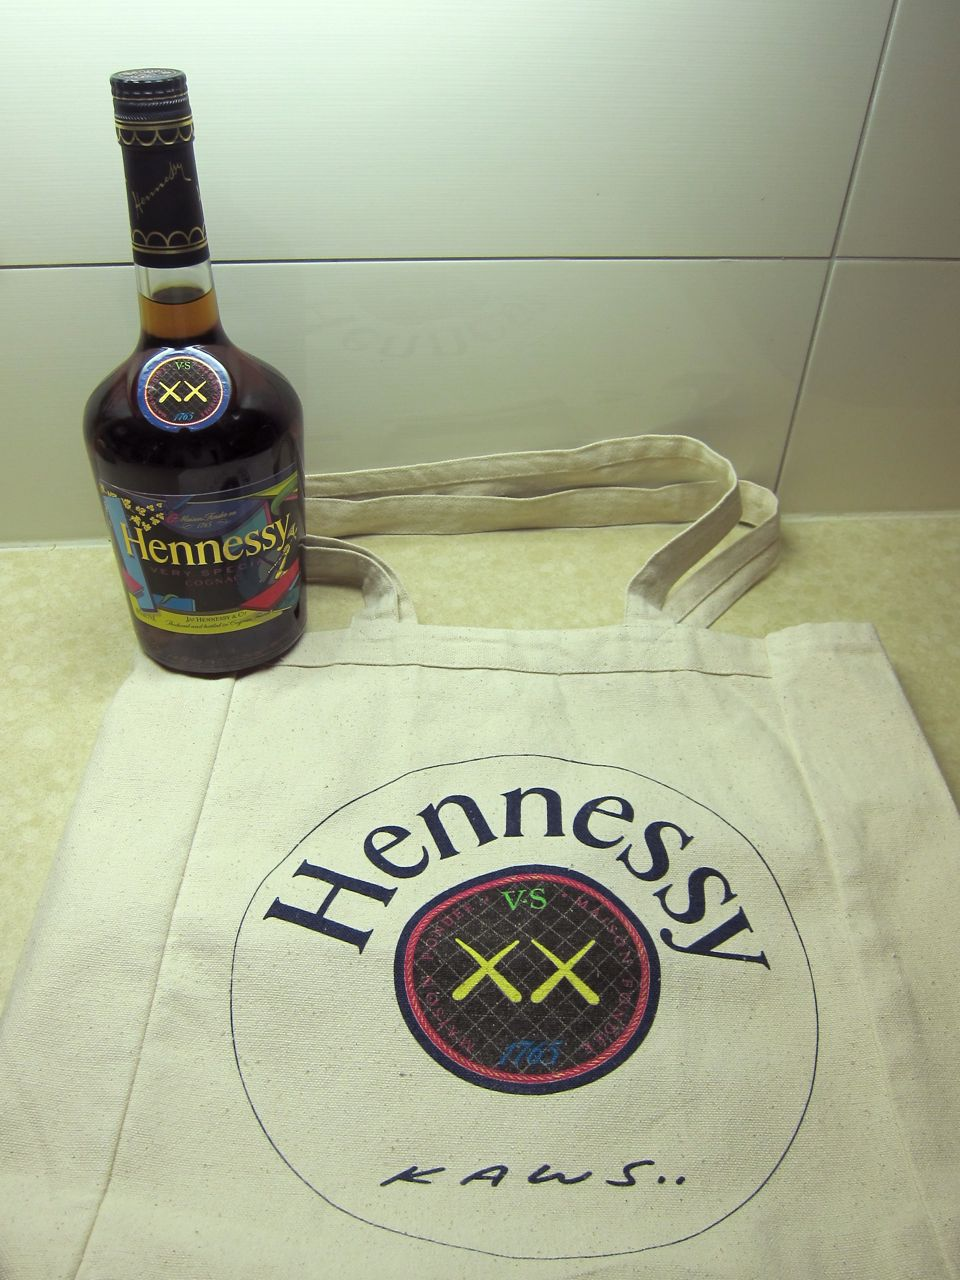 KAWS Hennessy VS Cognac Bottle New Museum AM 23